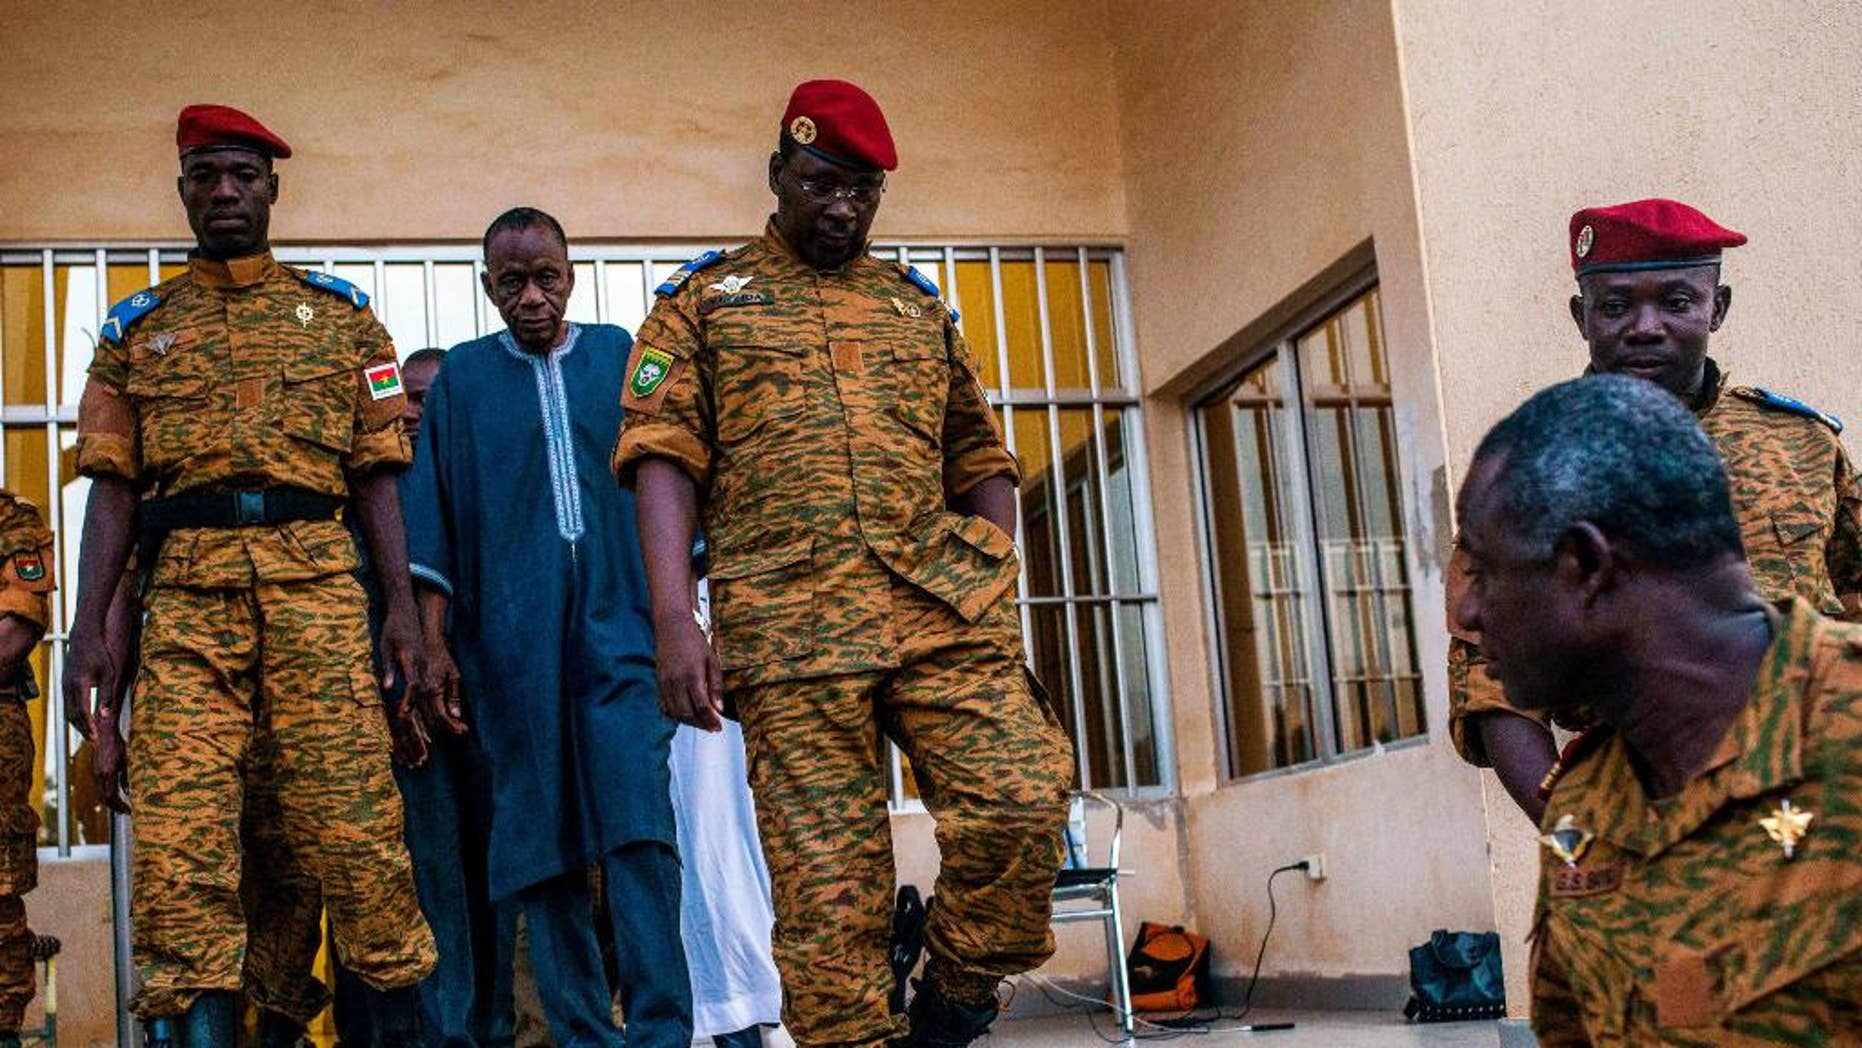 Burkina Faso Lt. Col. Issac Yacouba Zida, center, leaves a government building after meeting with political leaders in Ouagadougou, Burkina Faso, Tuesday, Nov. 4, 2014. International envoys tried Tuesday to resolve Burkina Faso's political crisis, with the specter of a power vacuum looming after the country's longtime president fled last week. (AP Photo/Theo Renaut)